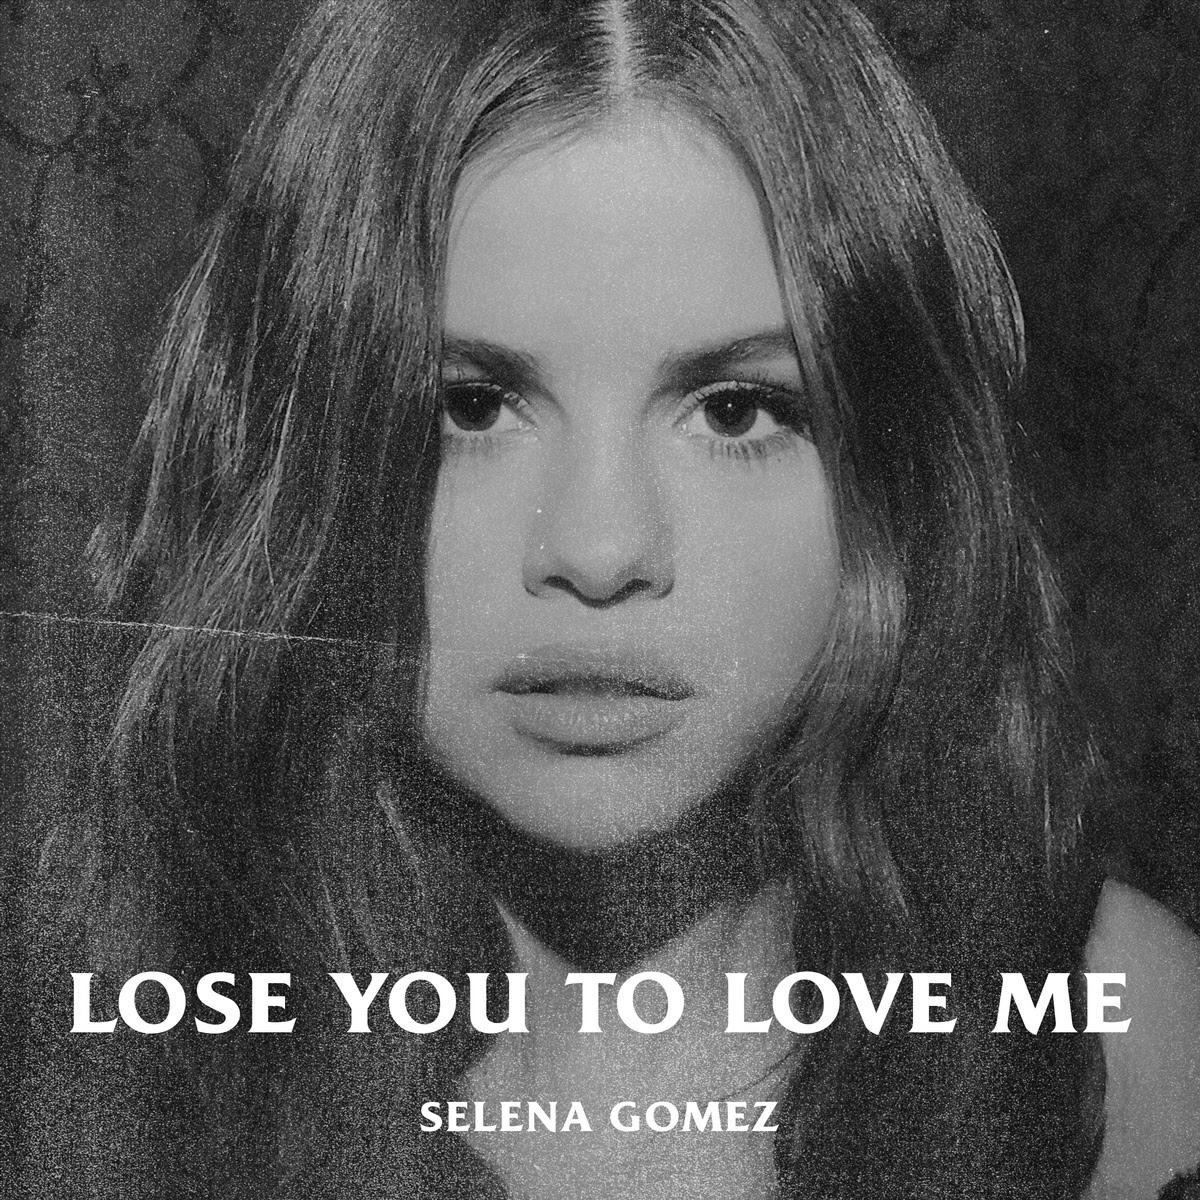 selena-gomez-objavila-novu-pjesmu-lose-you-to-love-me